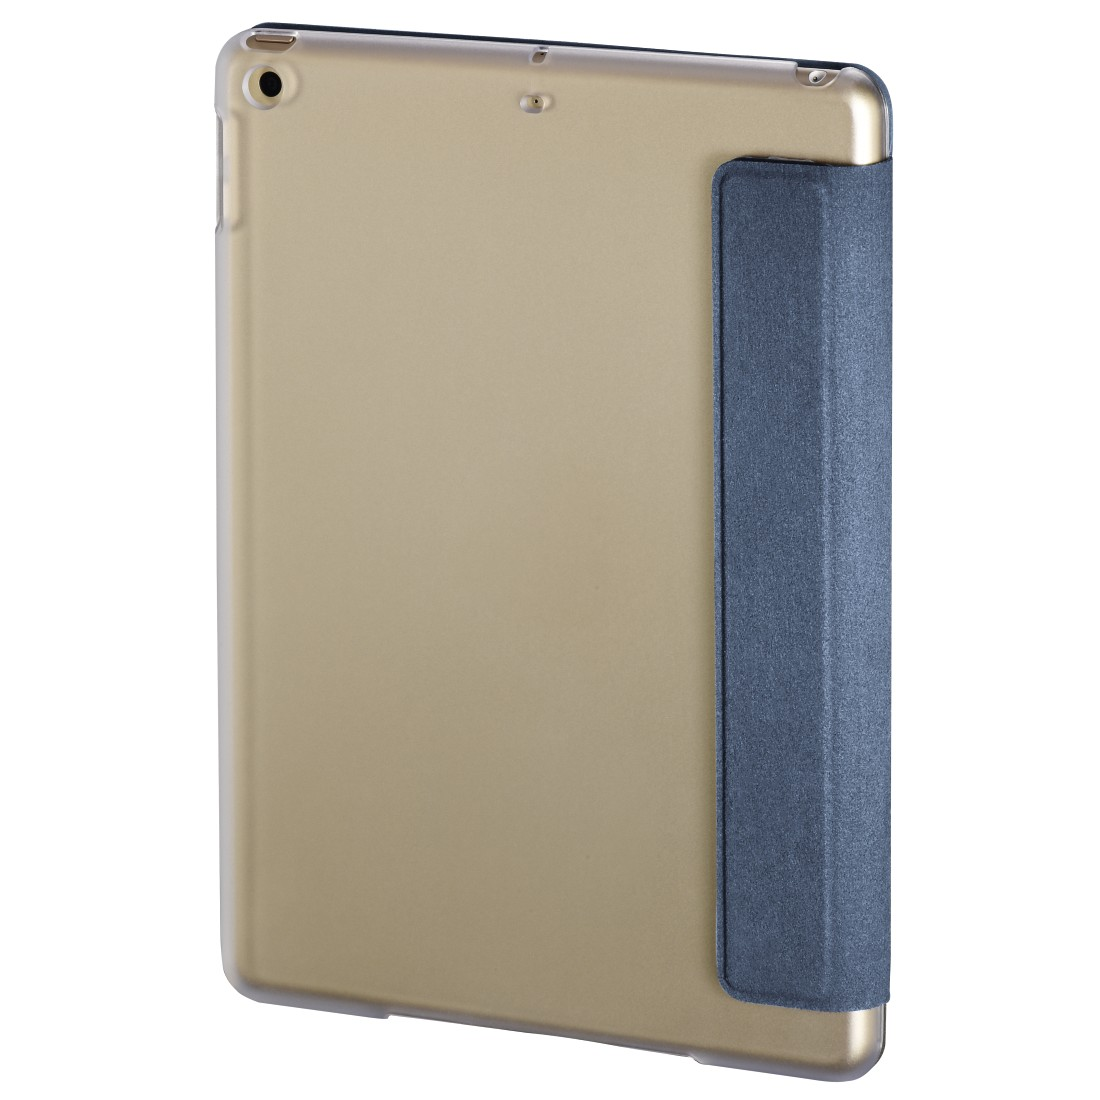 "awx3 High-Res Appliance 3 - Hama, Étui pour tablette ""Suede Style"" p. Apple iPad 9.7 (2017/2018), bleu clair"